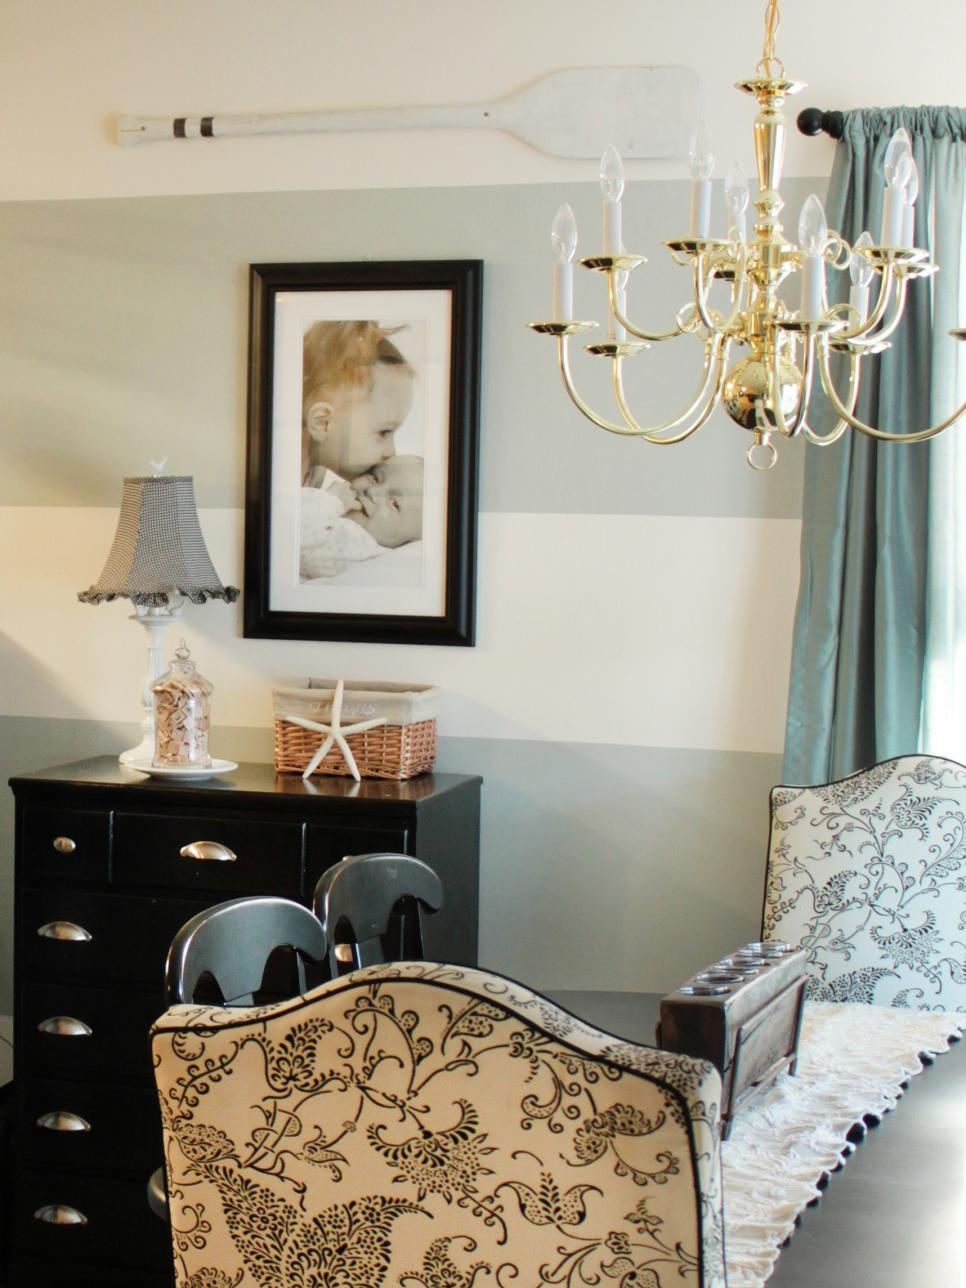 15 Dining Room Decorating Ideas | Hgtv With Regard To Wall Art For Dining Room (Image 2 of 20)